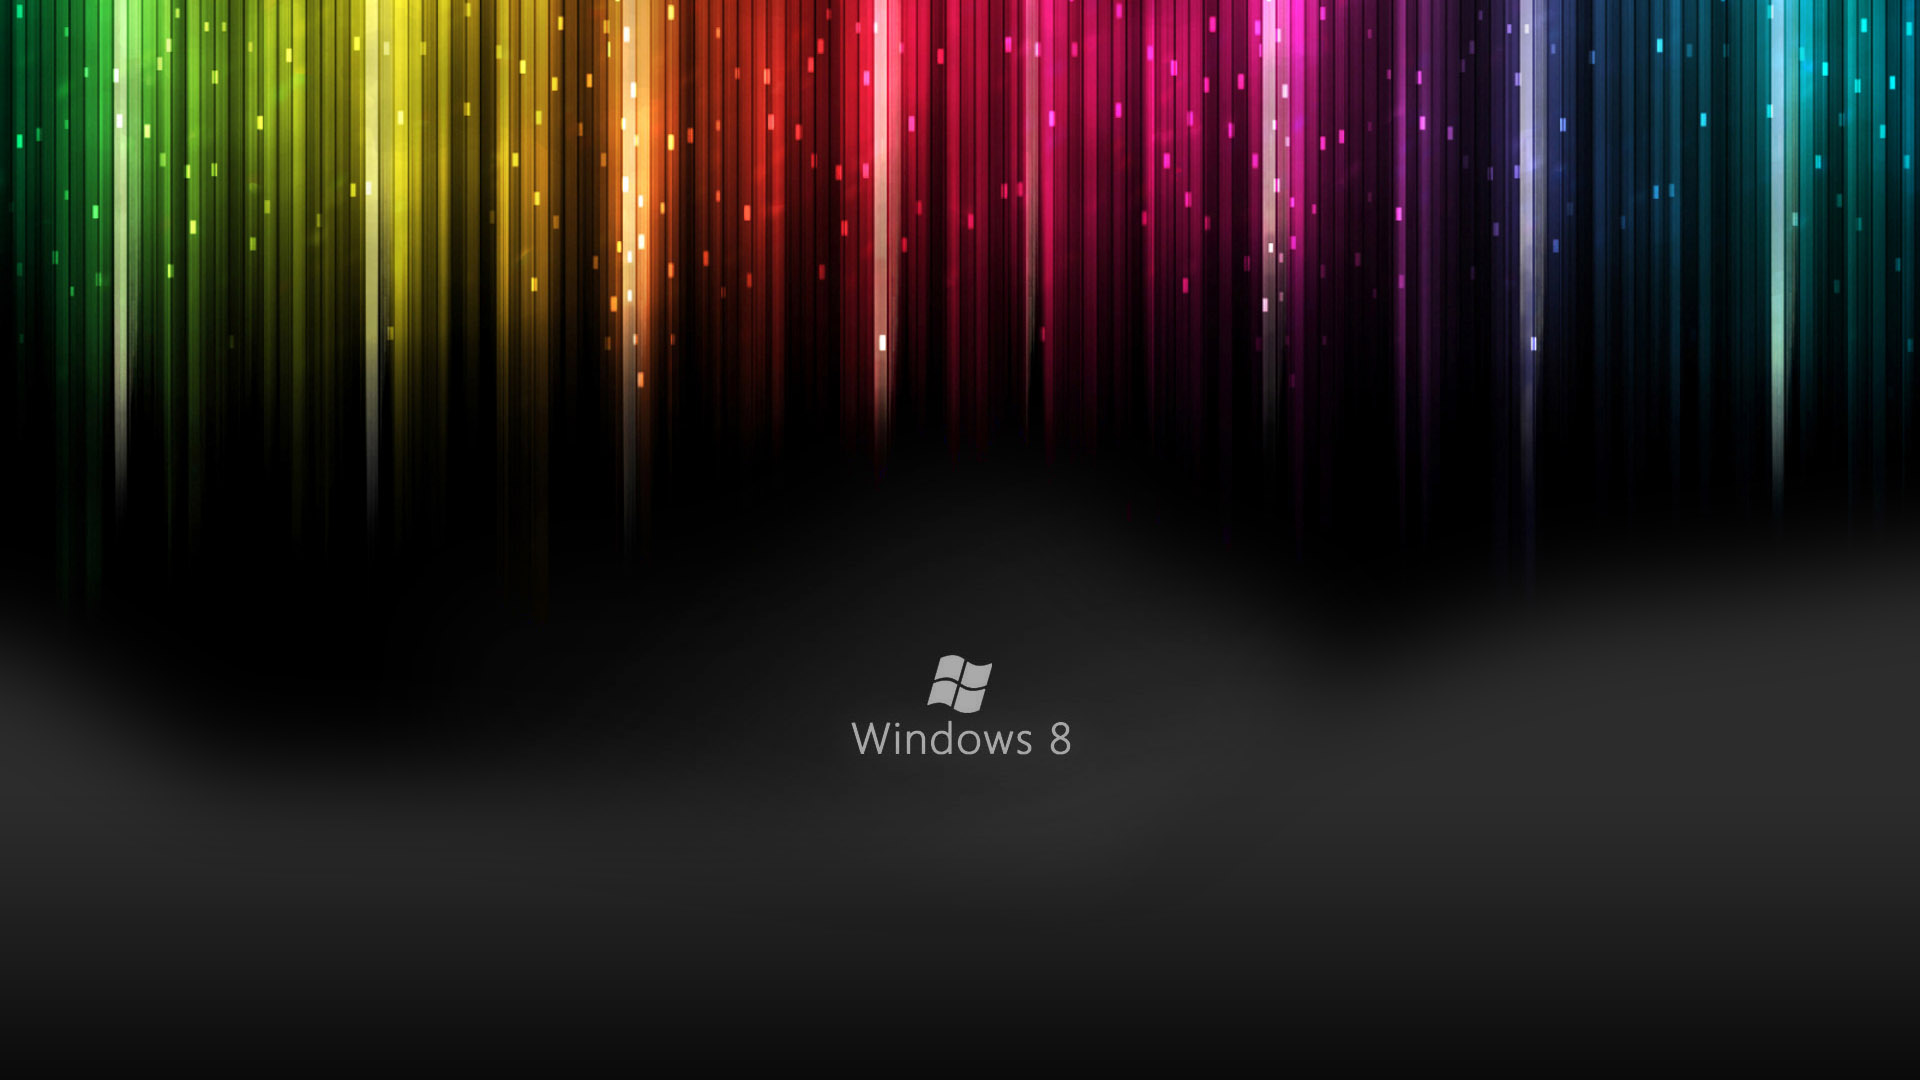 HD Wallpapers Live Background